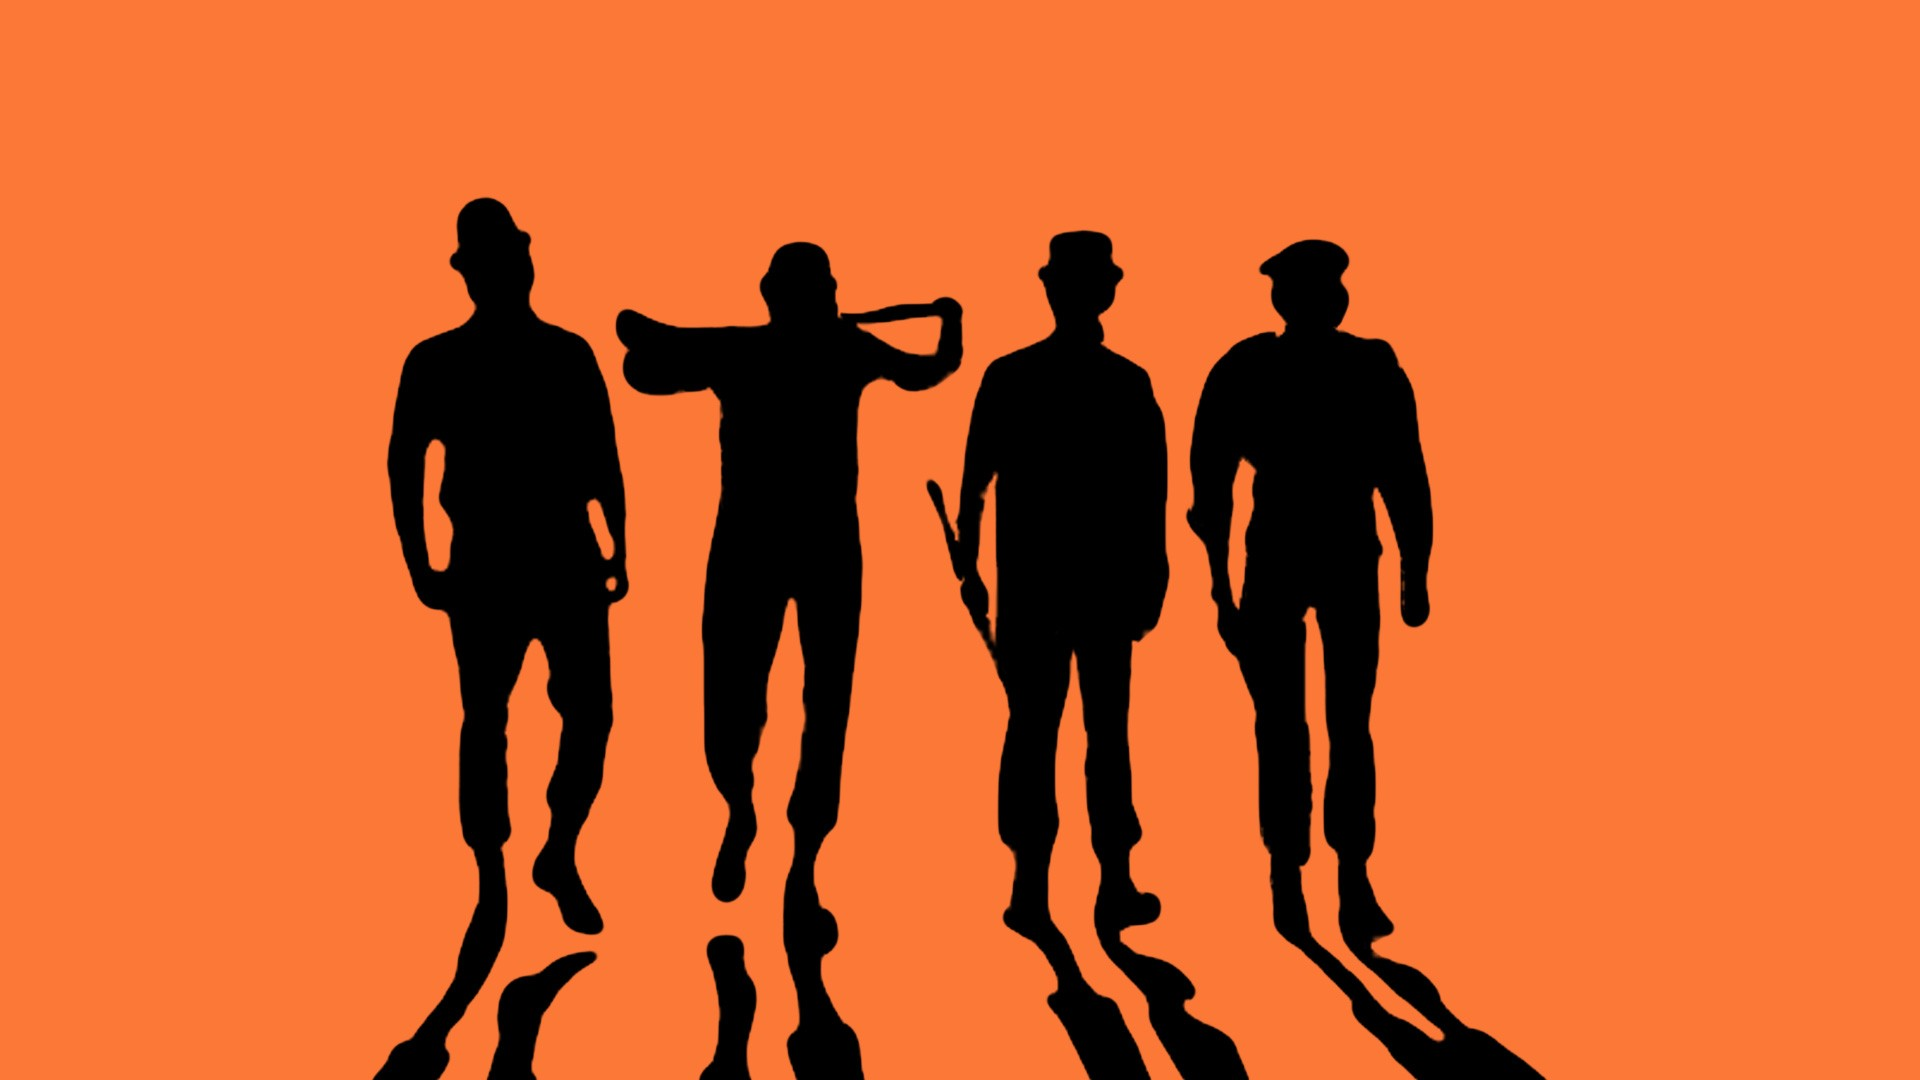 1920x1080 Movie A Clockwork Orange